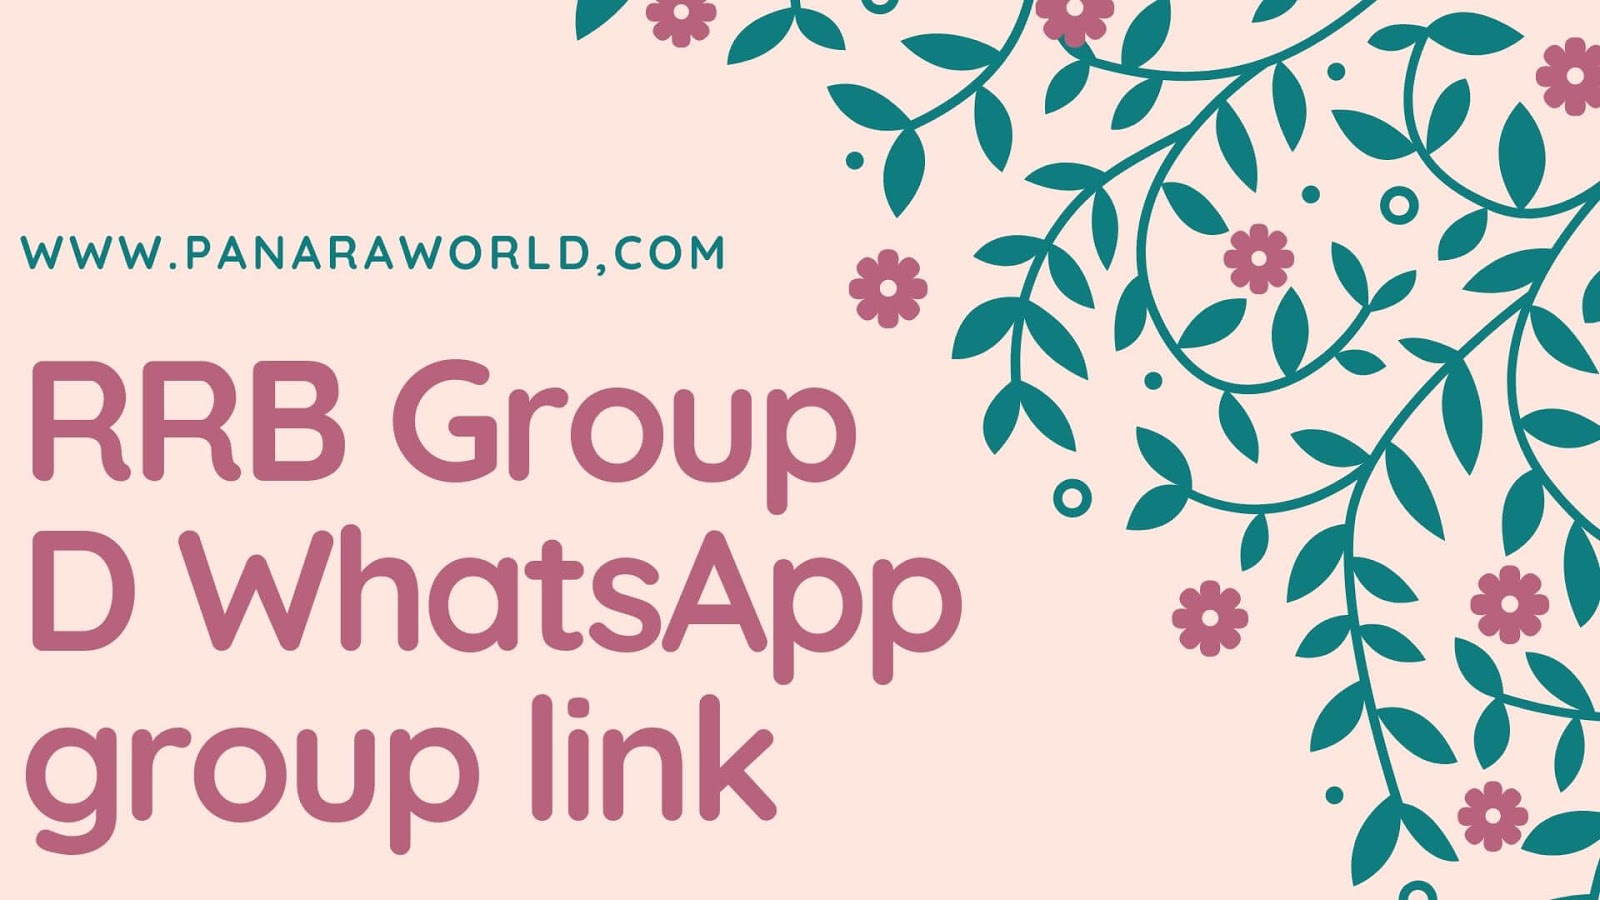 RRB Group D WhatsApp group link For New - Panaraworld